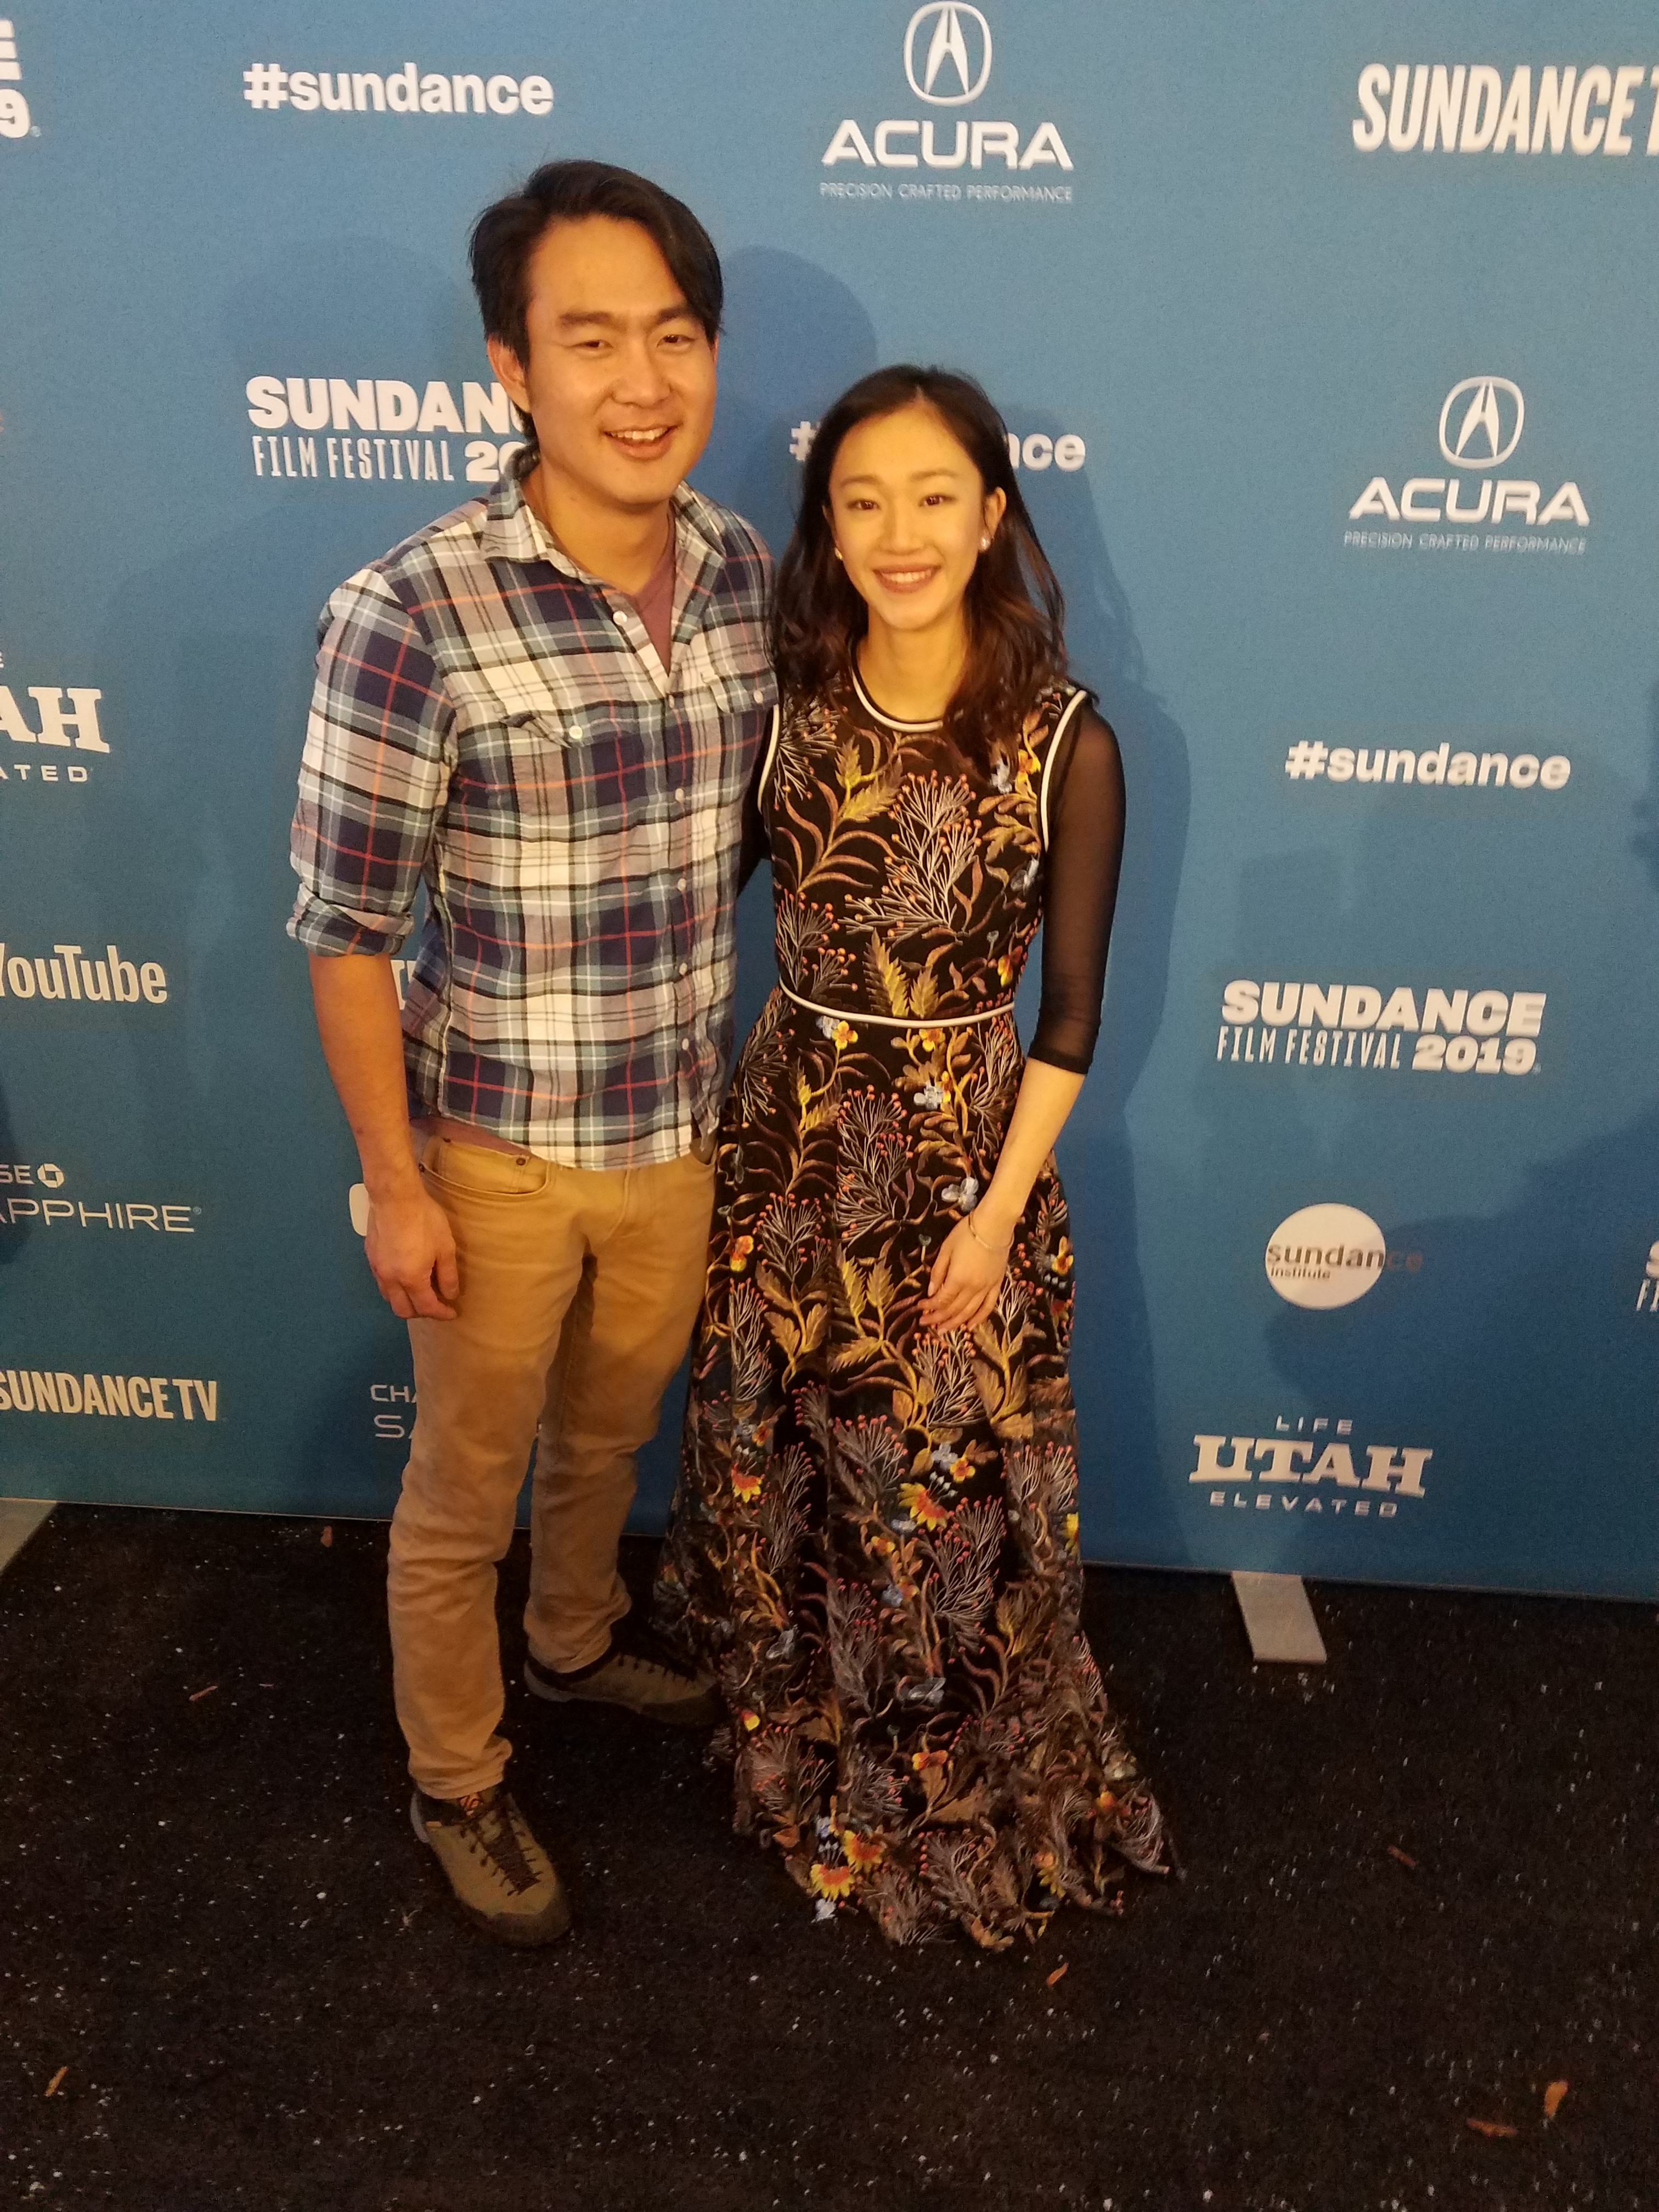 Roger Suen and Tiffany Chuat the Sundance premiere